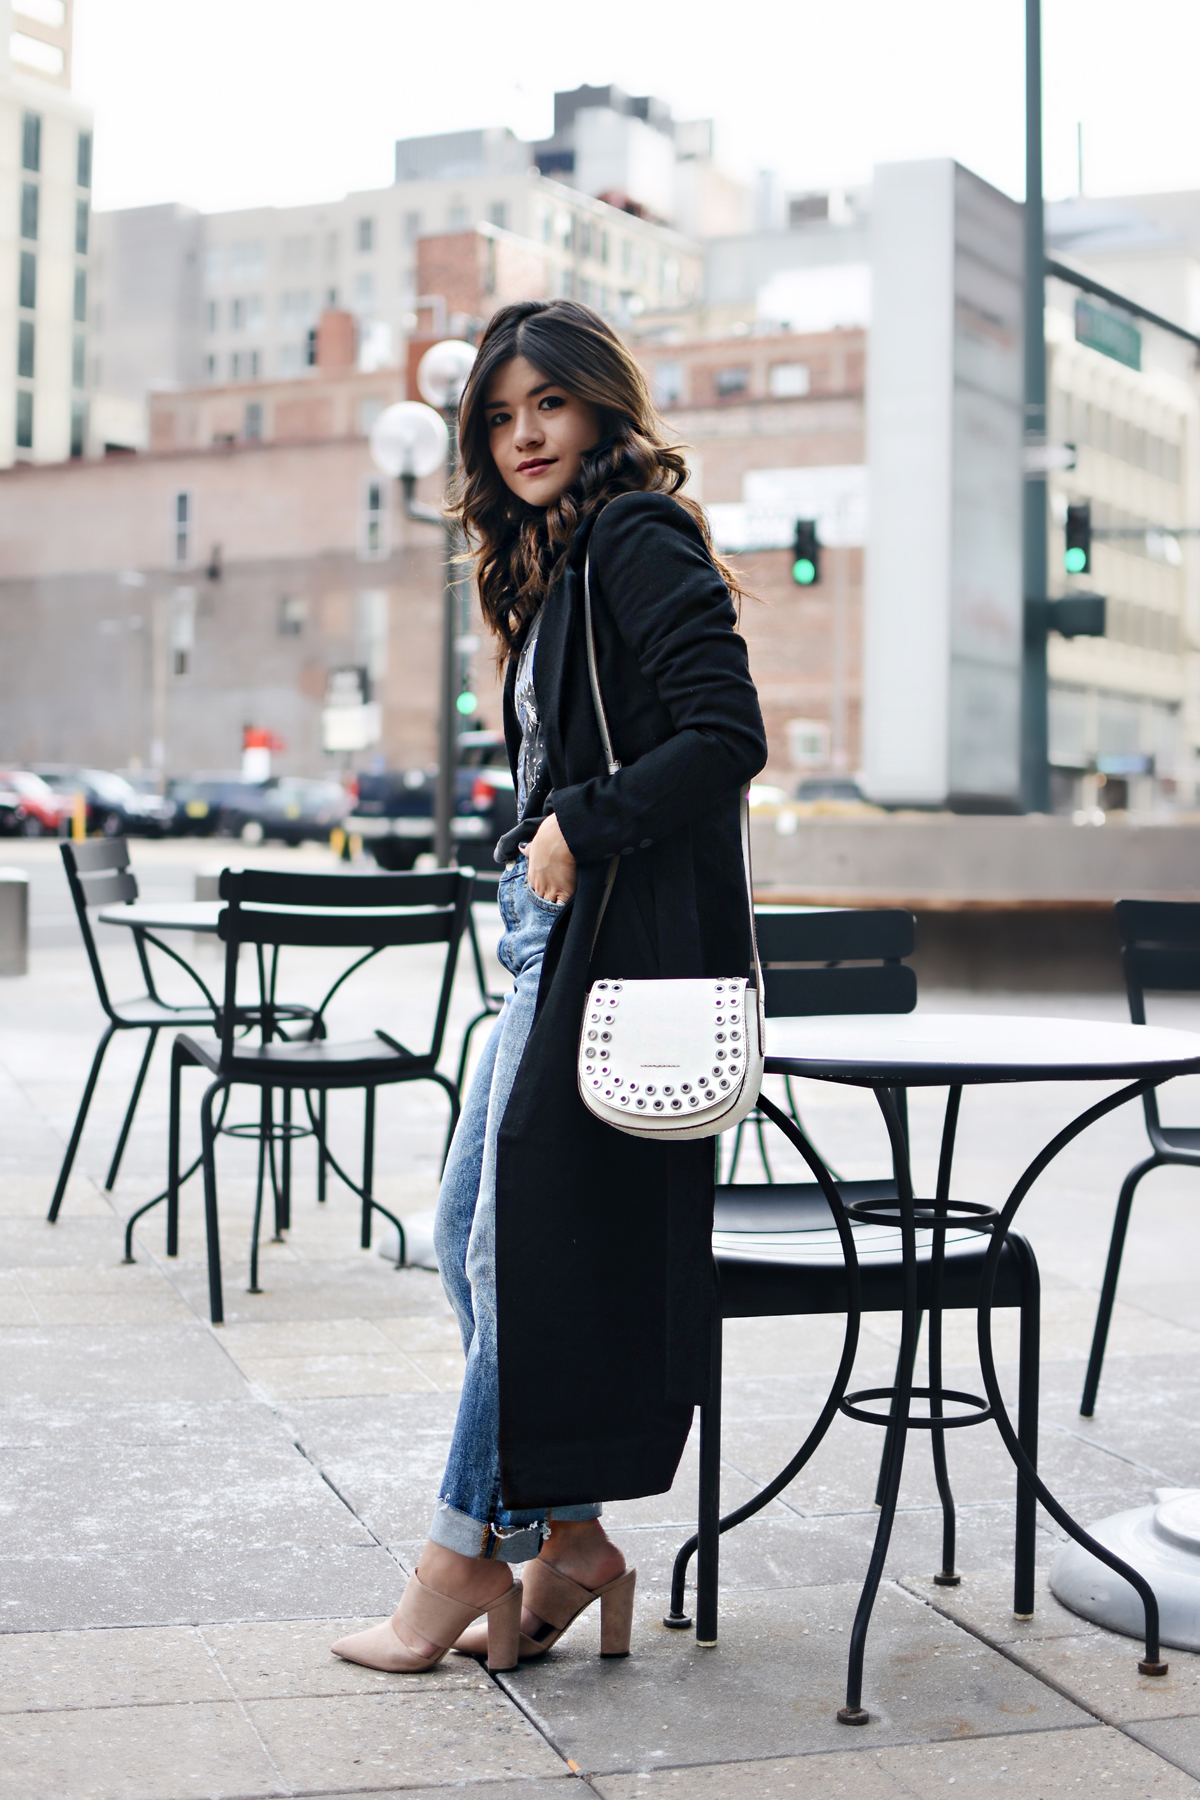 Carolina Hellal of Chic Talk wearing an H&M graphic t-shirt, H&m girlfriend jeans, Frey company white crossbody bag, and NA-KD fashion mules and black coat.